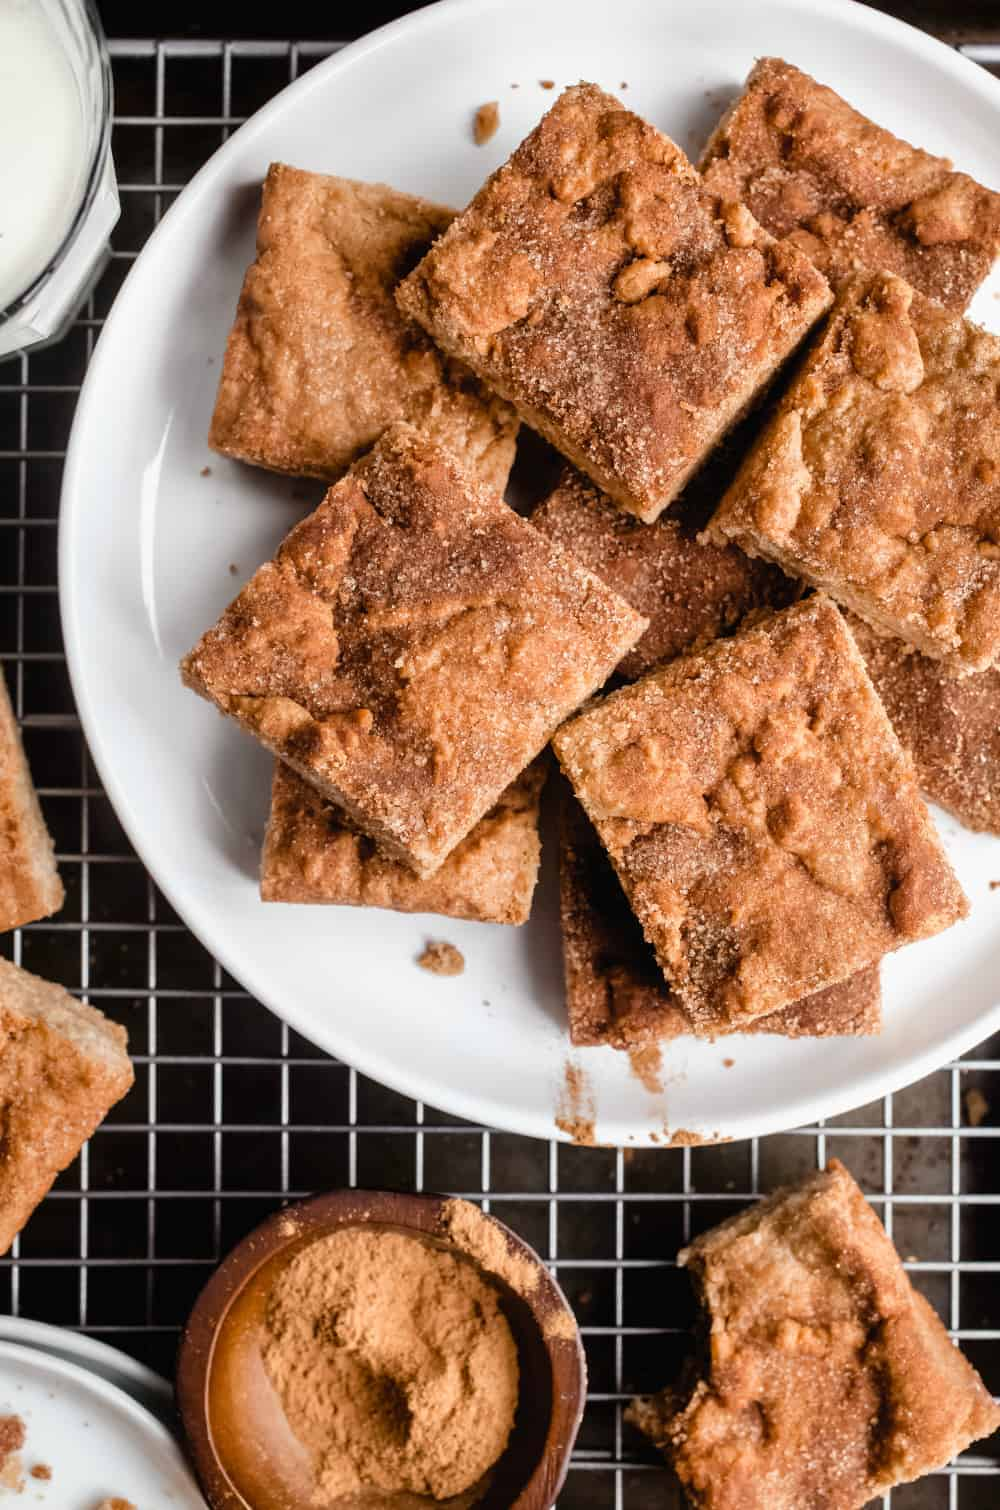 Cut snickerdoodle blondies arranged on a white plate that is set on a wire rack